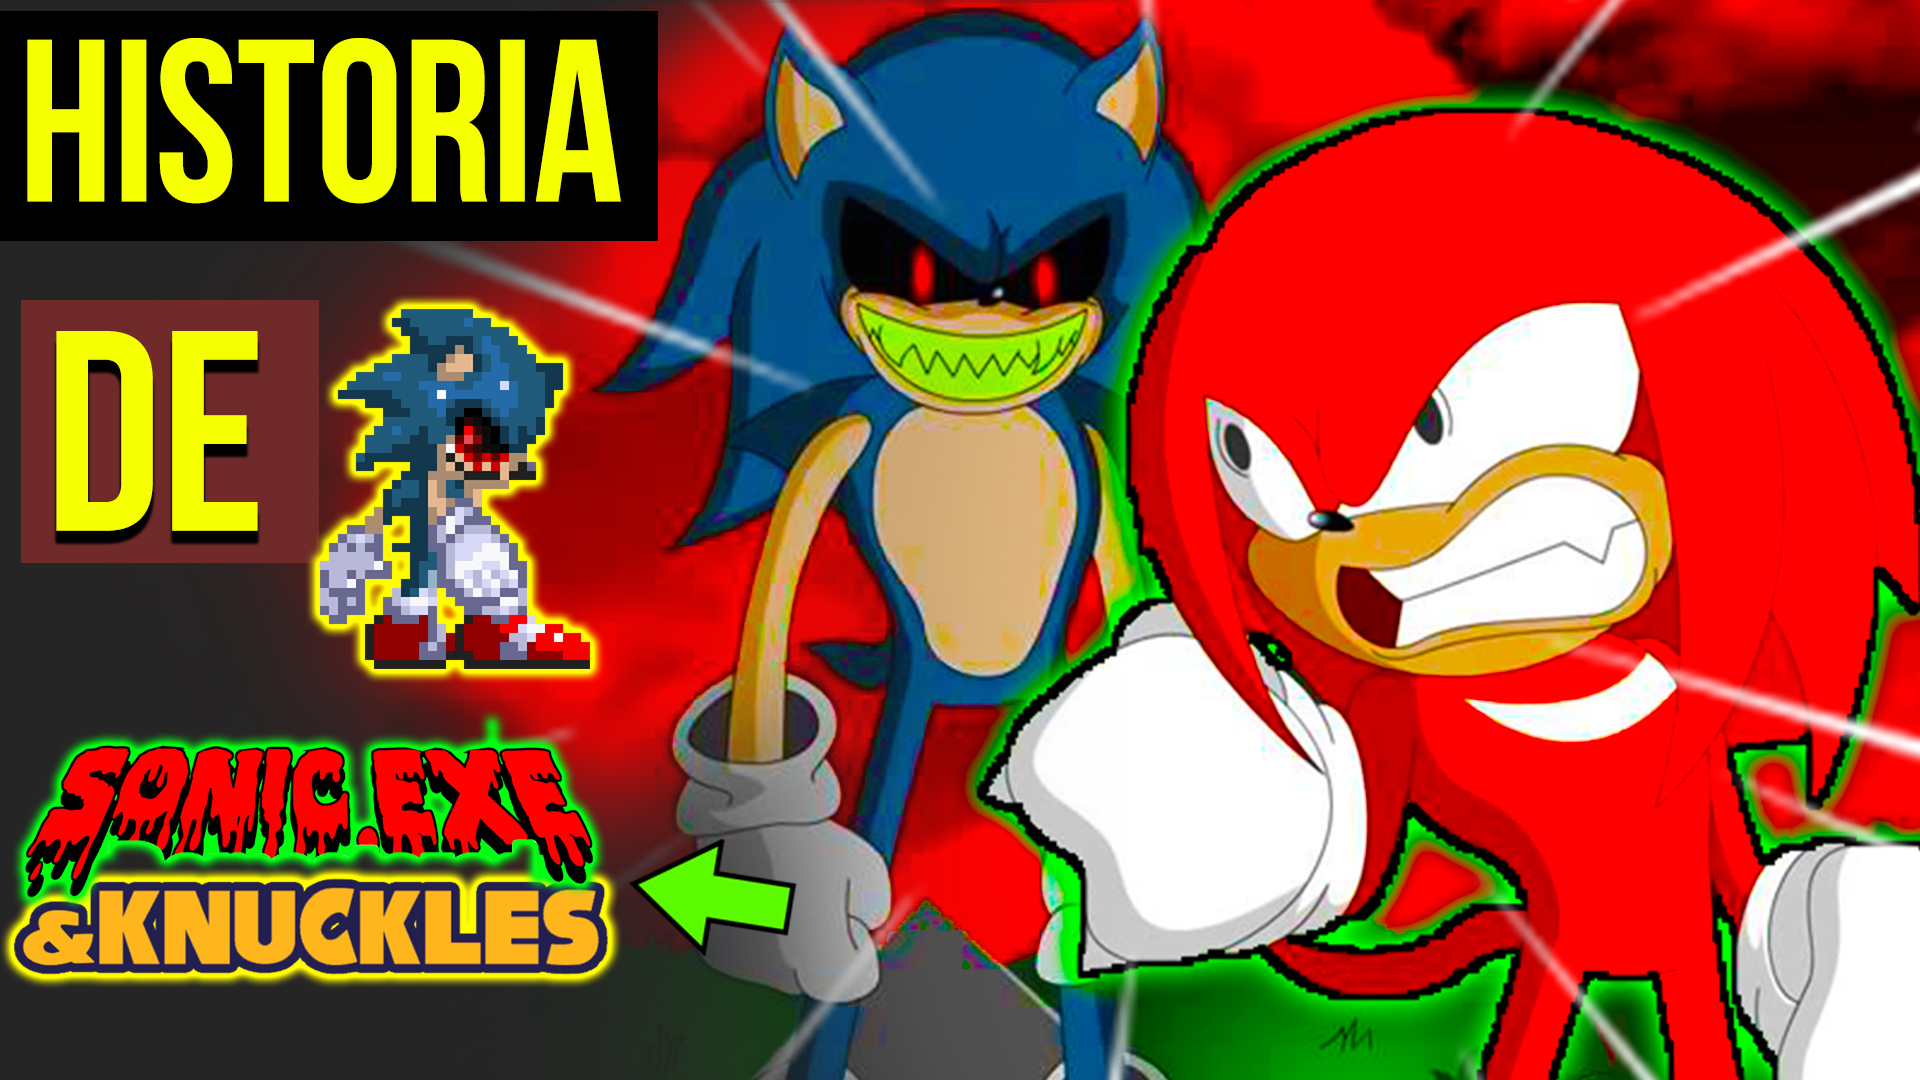 Sonic.exe & Knuckles